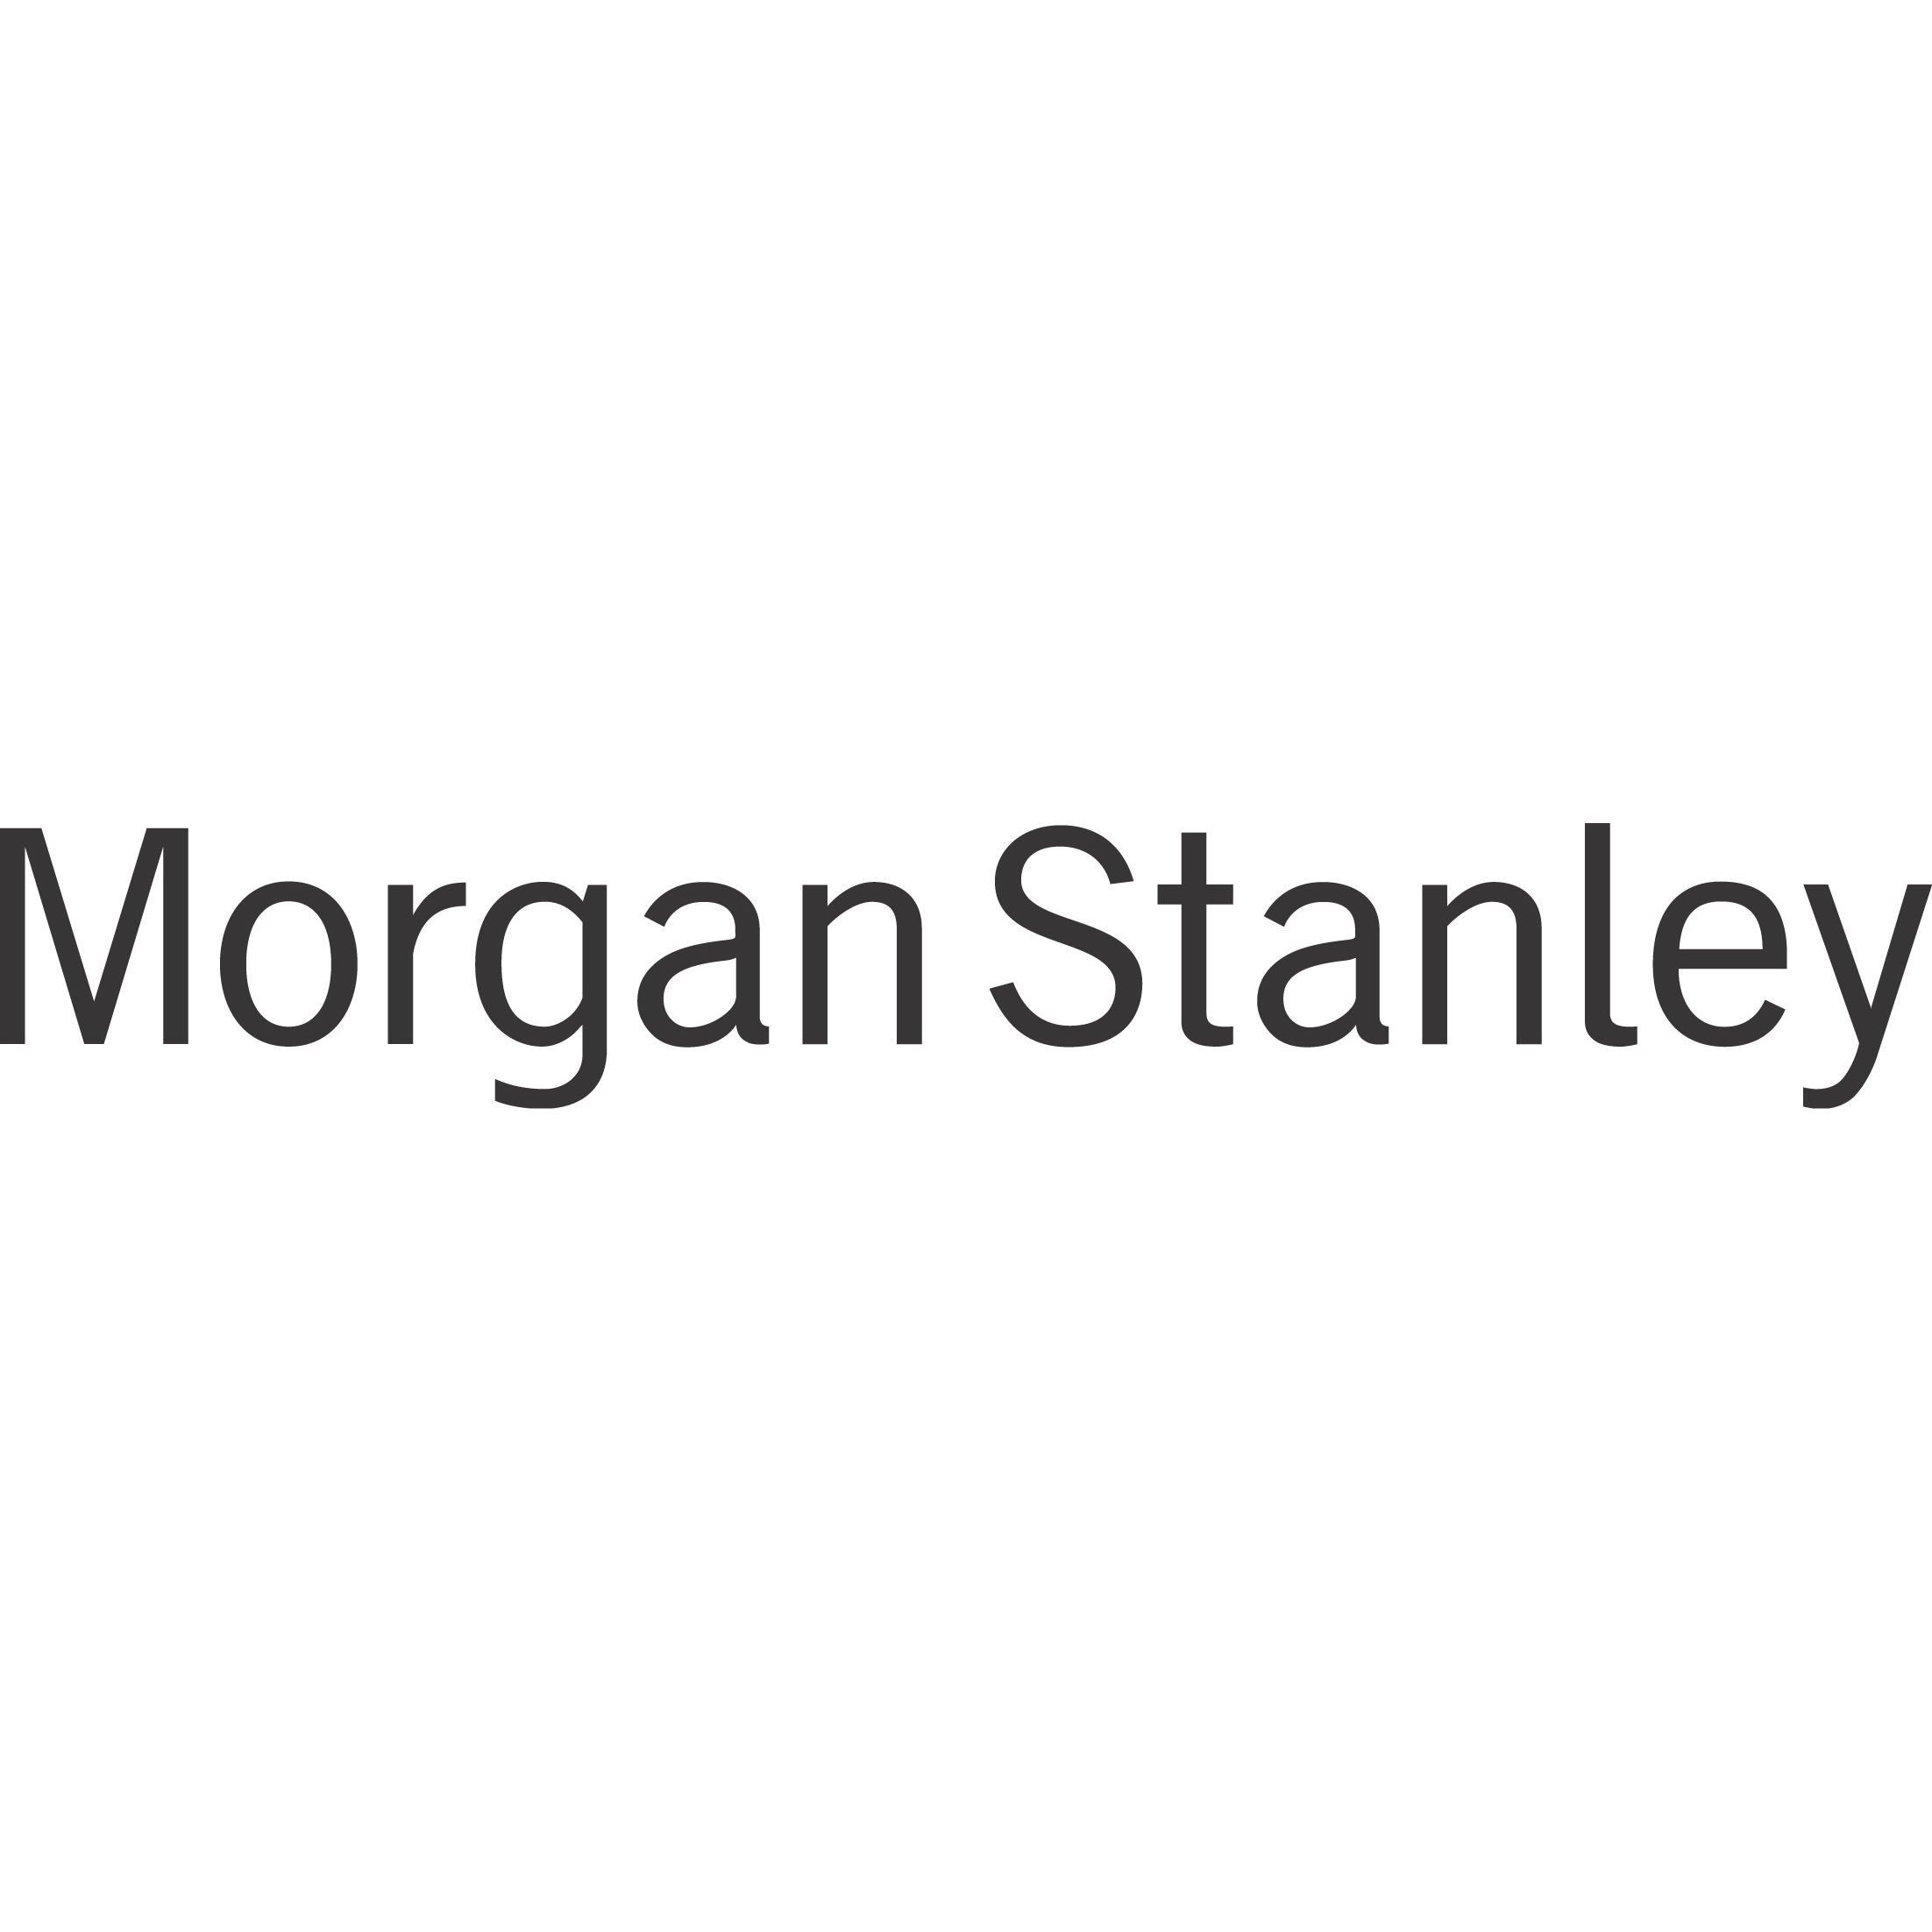 Richard E Cudjo - Morgan Stanley | Financial Advisor in Oklahoma City,Oklahoma